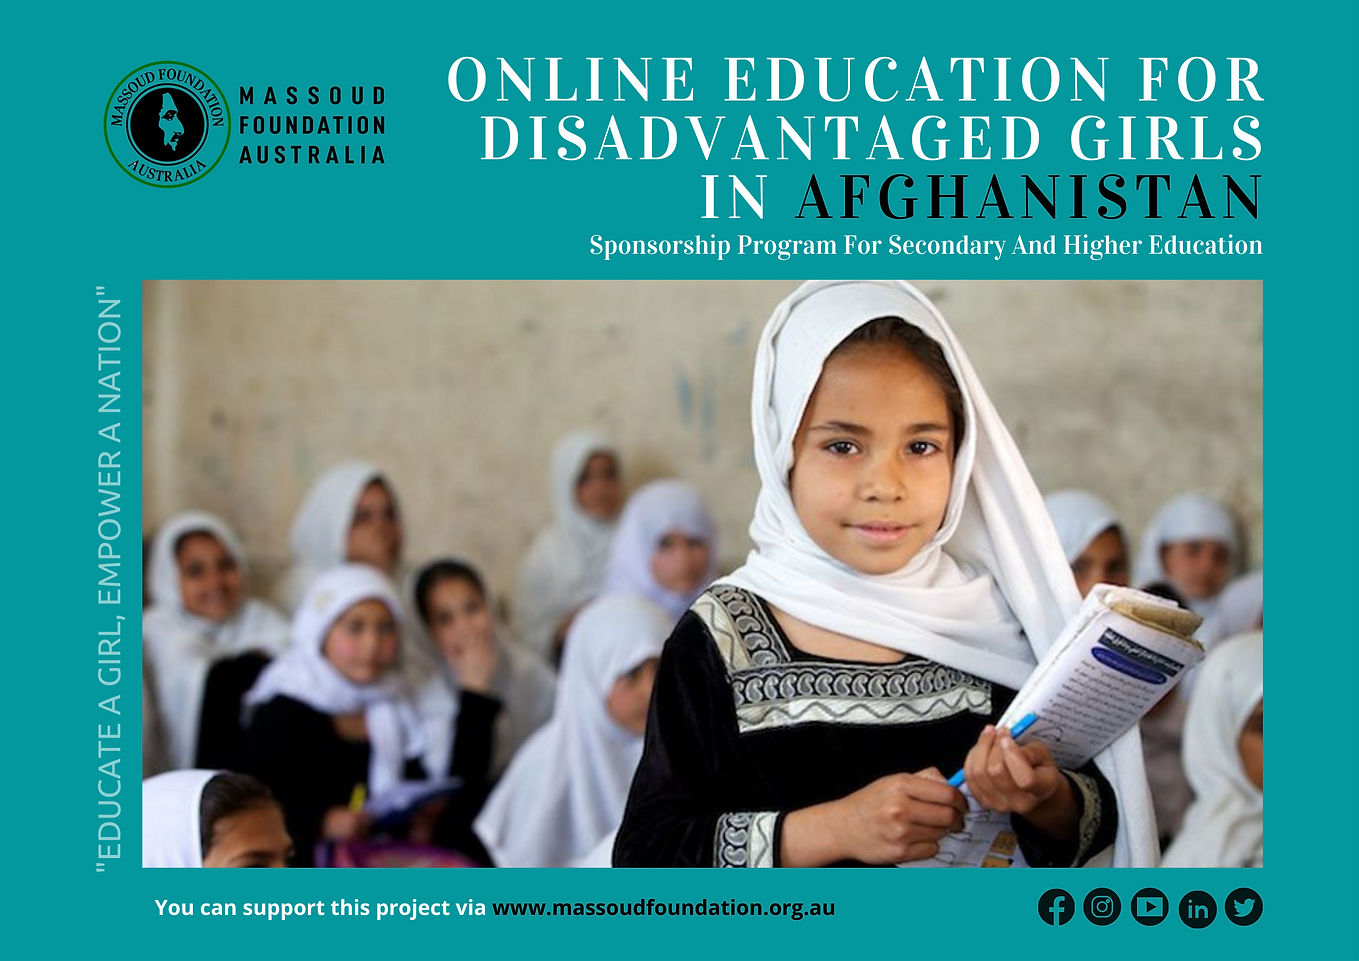 Onlineducation for girls in Afghanistan (1).png